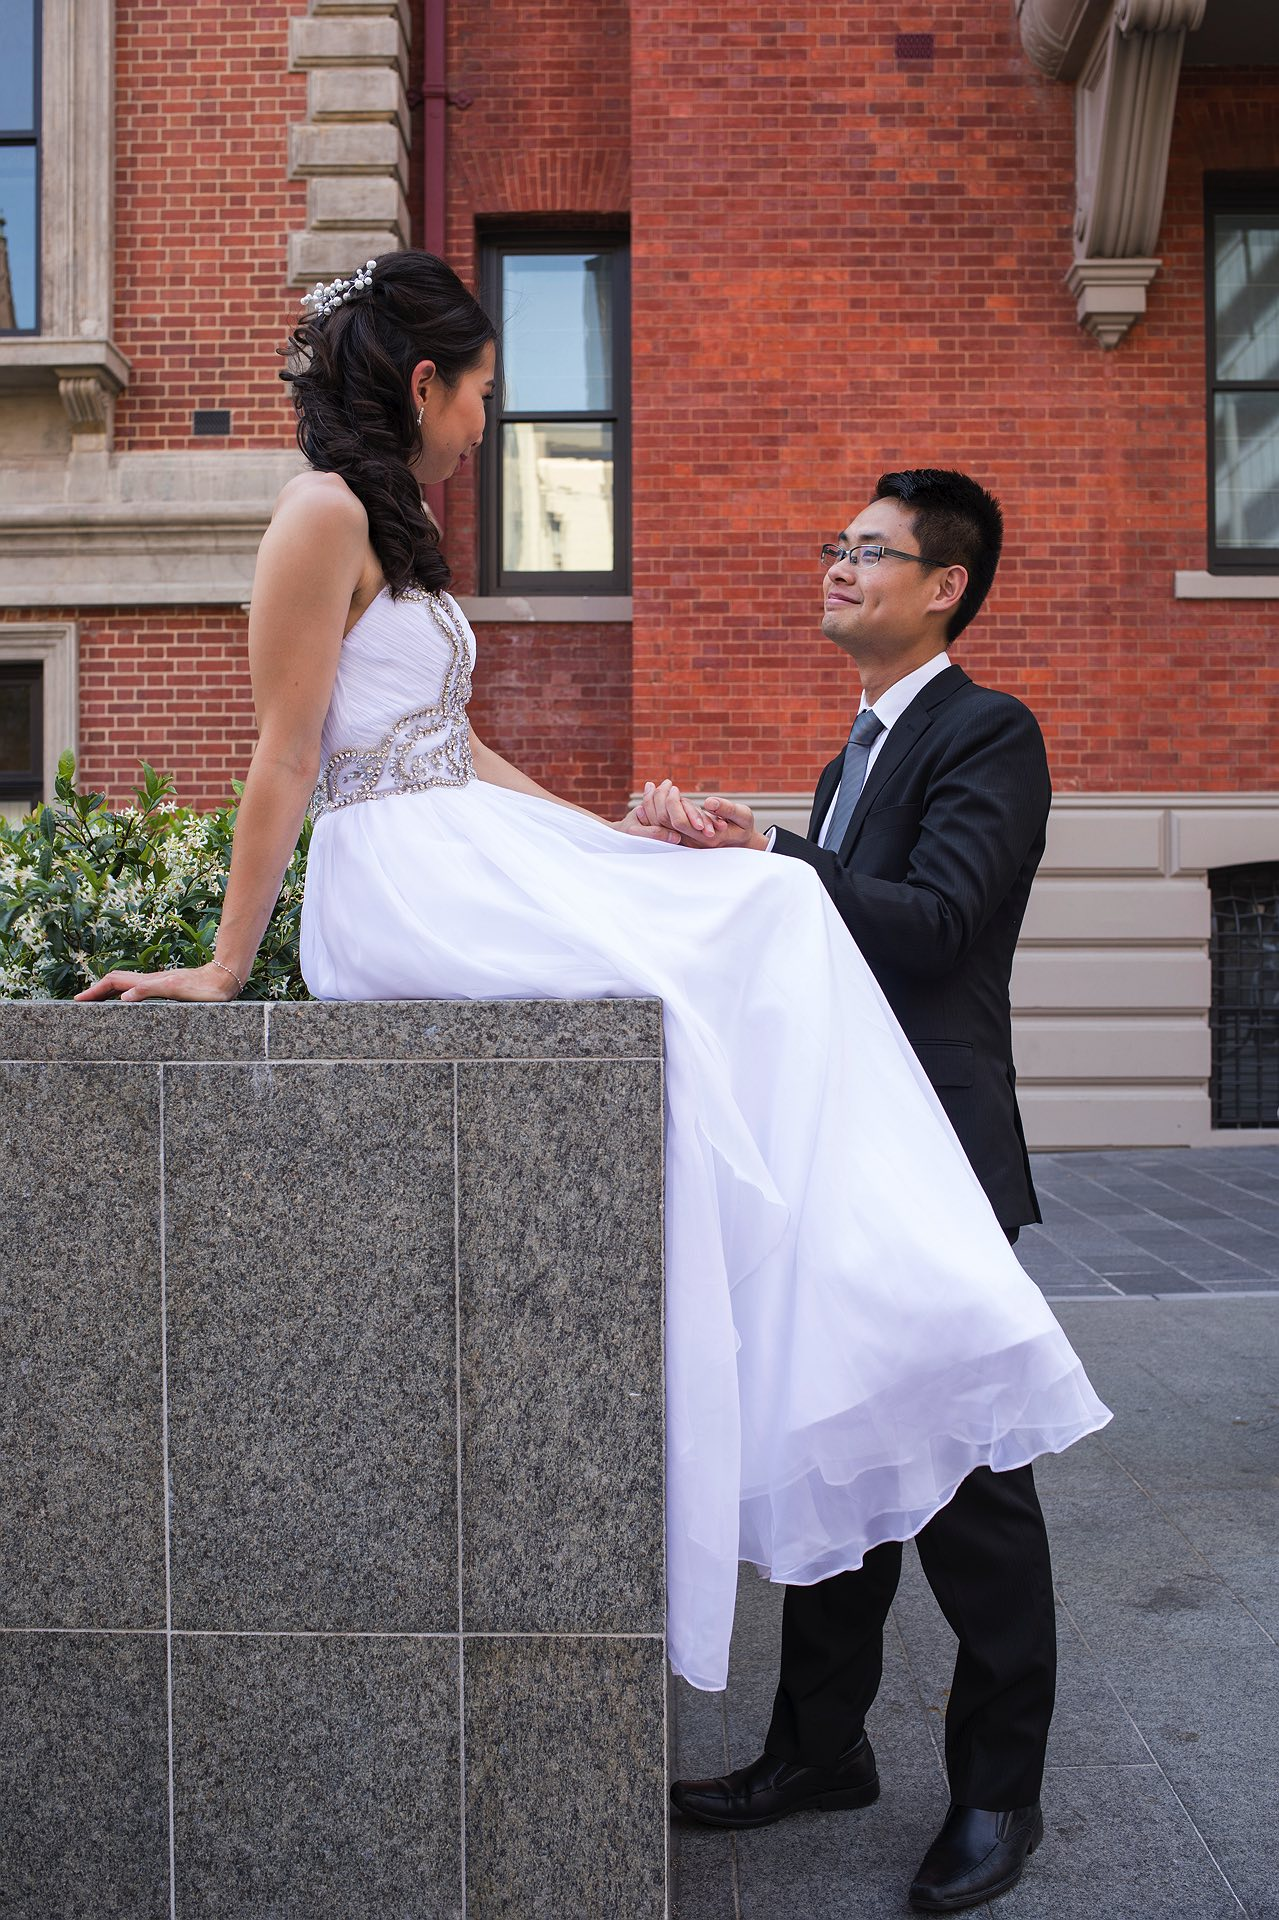 state-buildings-perth-wedding